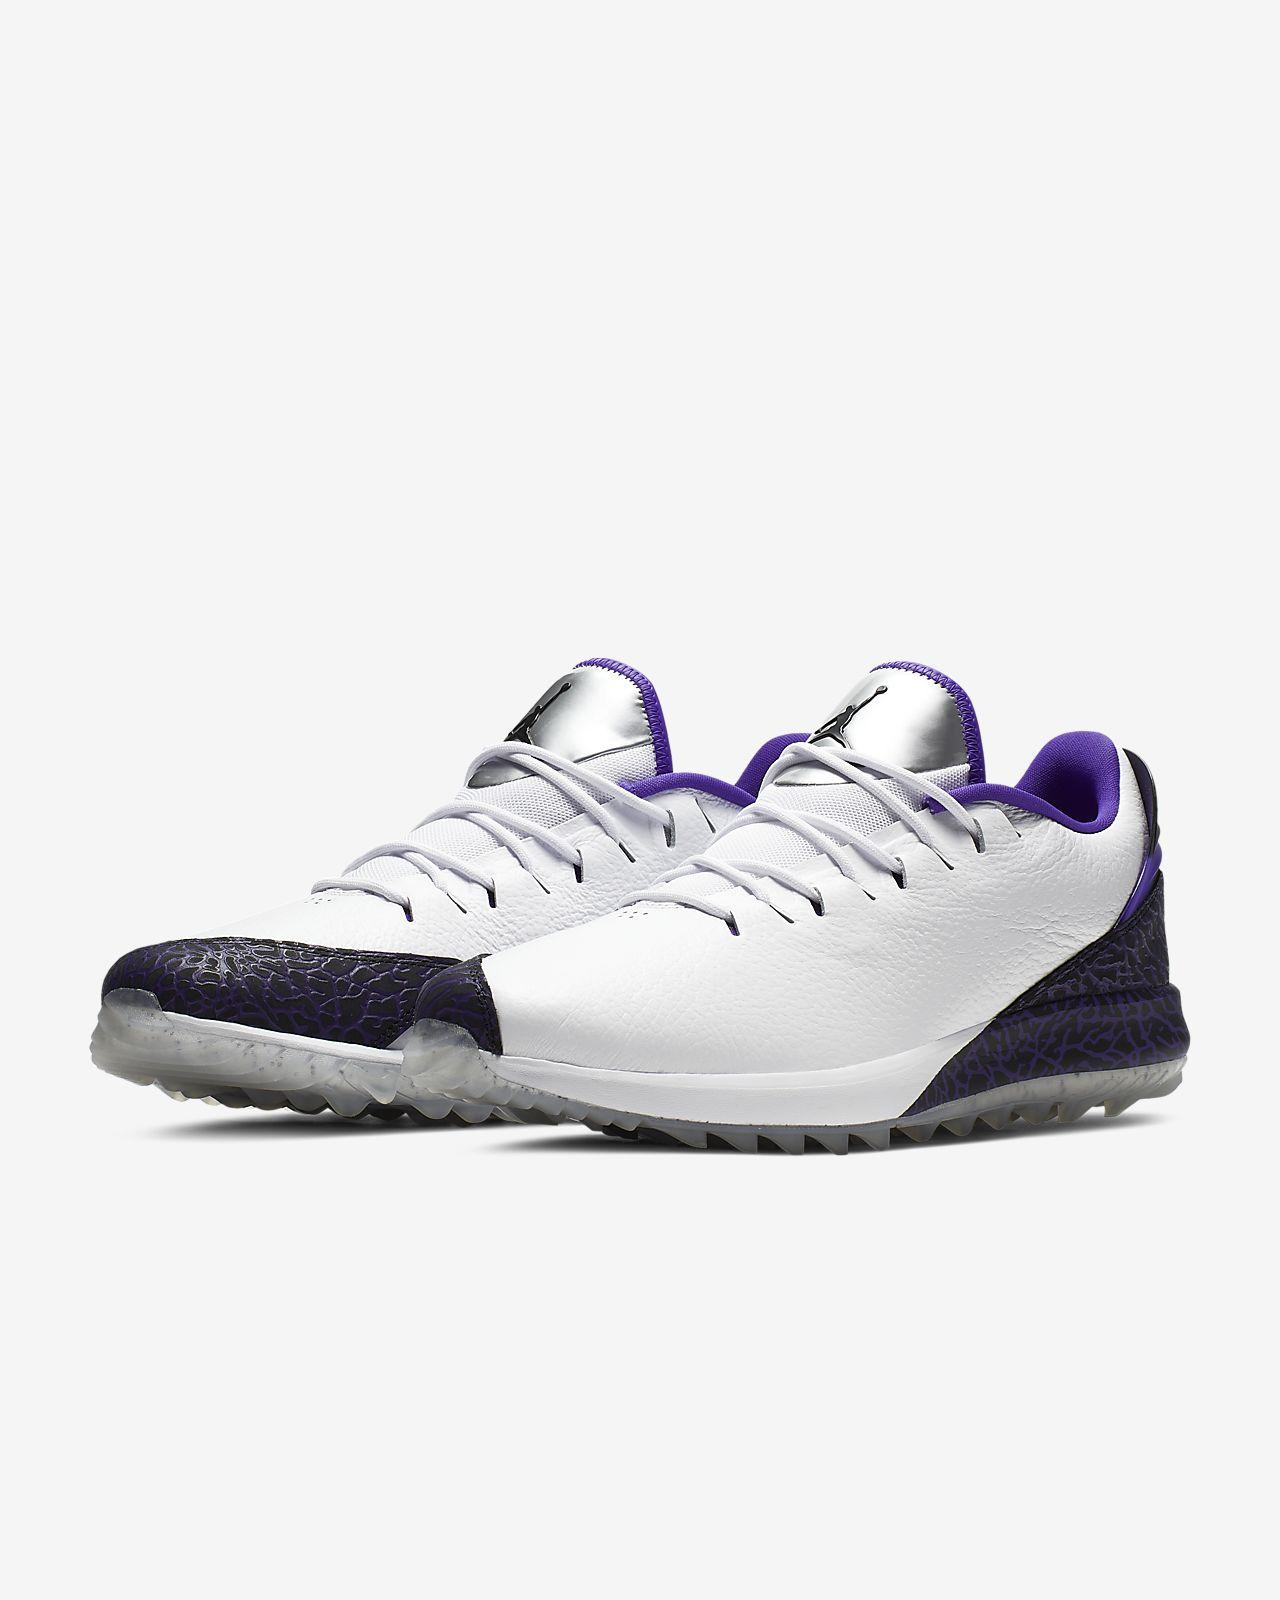 7c4e0927fb Jordan ADG Men's Golf Shoe. Nike.com